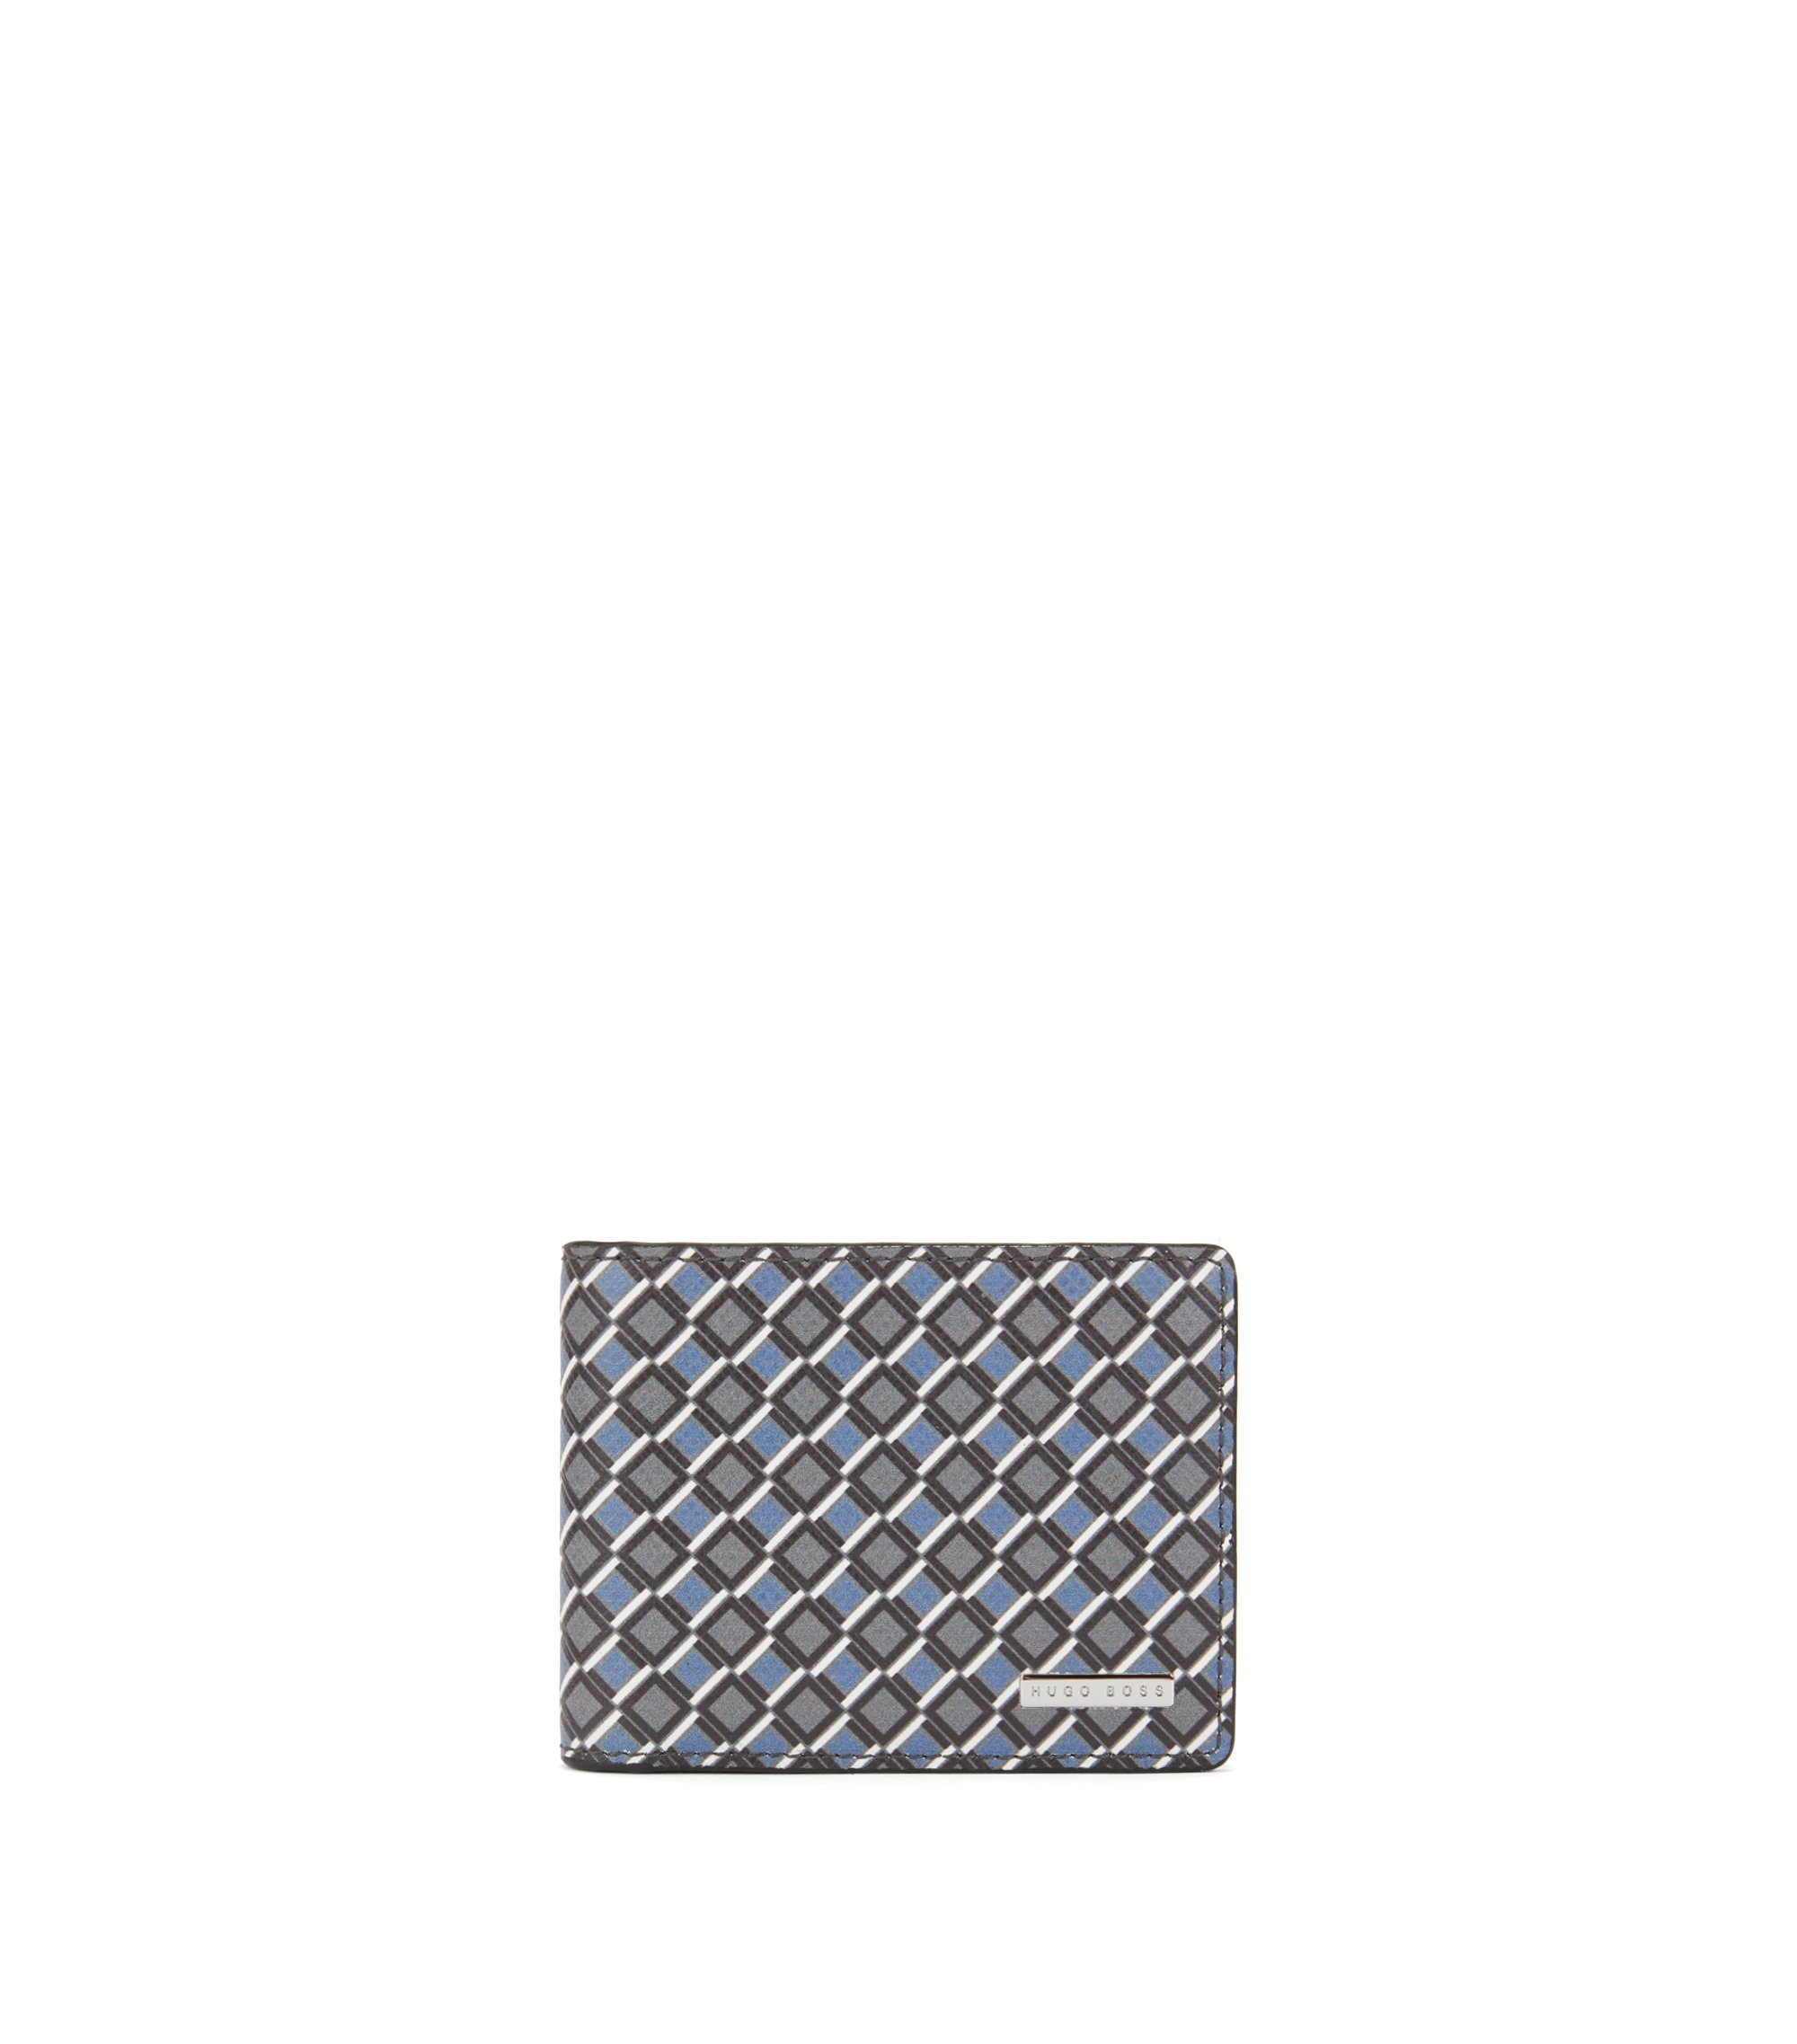 Signature Collection billfold wallet in seasonal-printed calf leather, Patterned